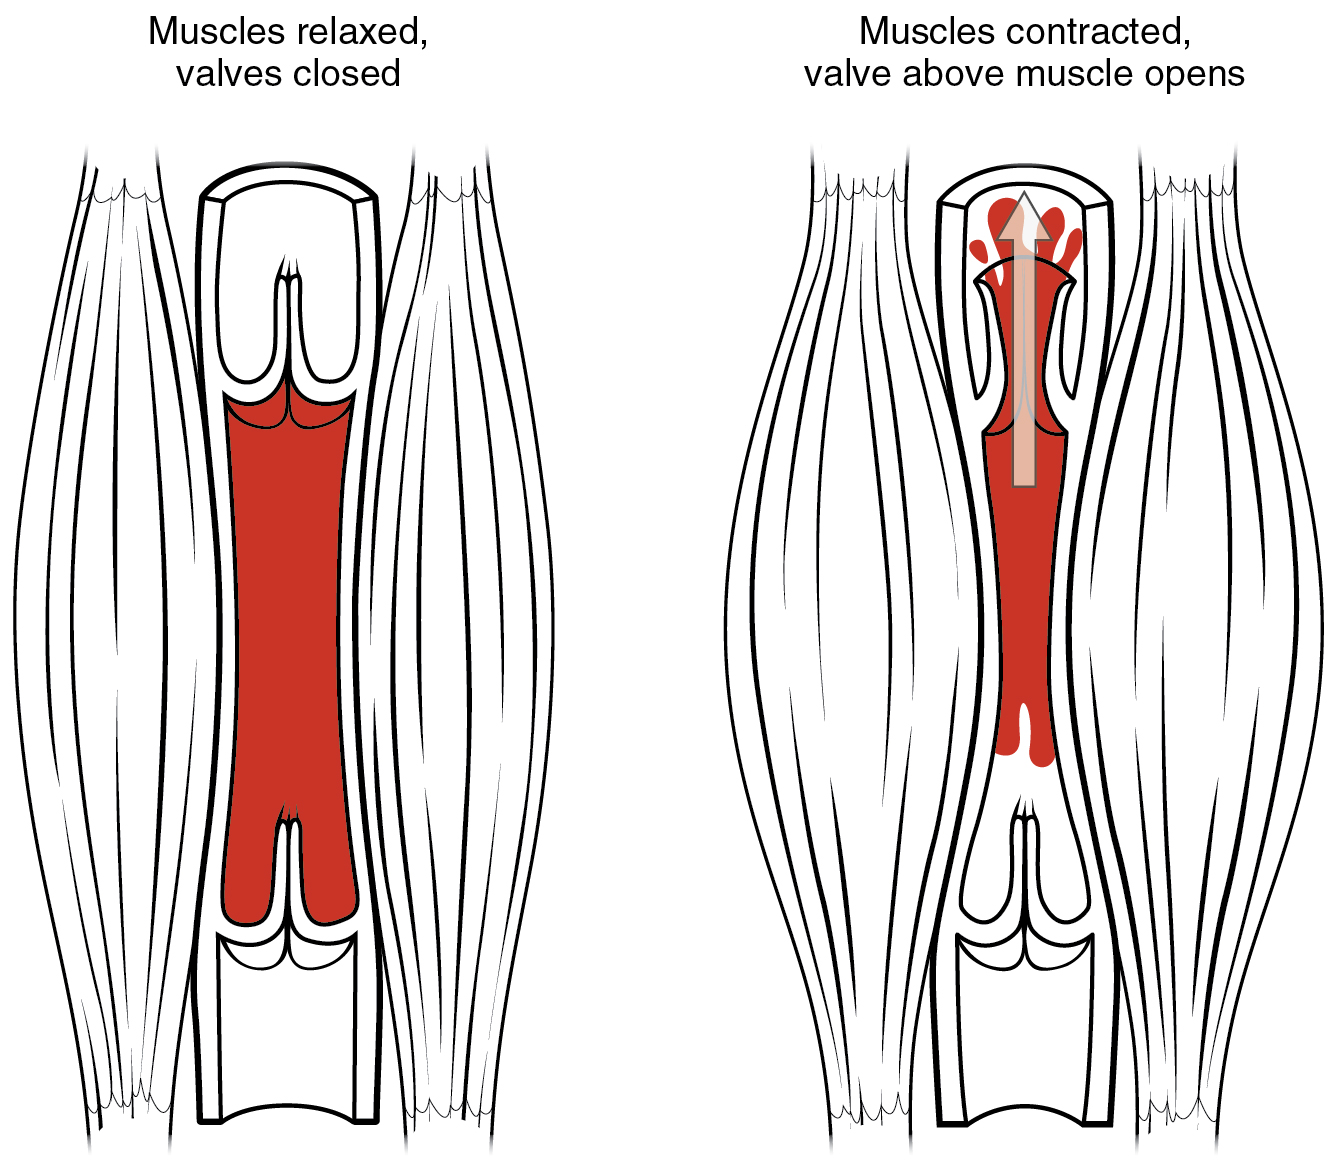 The left panel shows the structure of a skeletal muscle vein pump when the muscle is relaxed, and the right panel shows the structure of a skeletal muscle vein pump when the muscle is contracted.